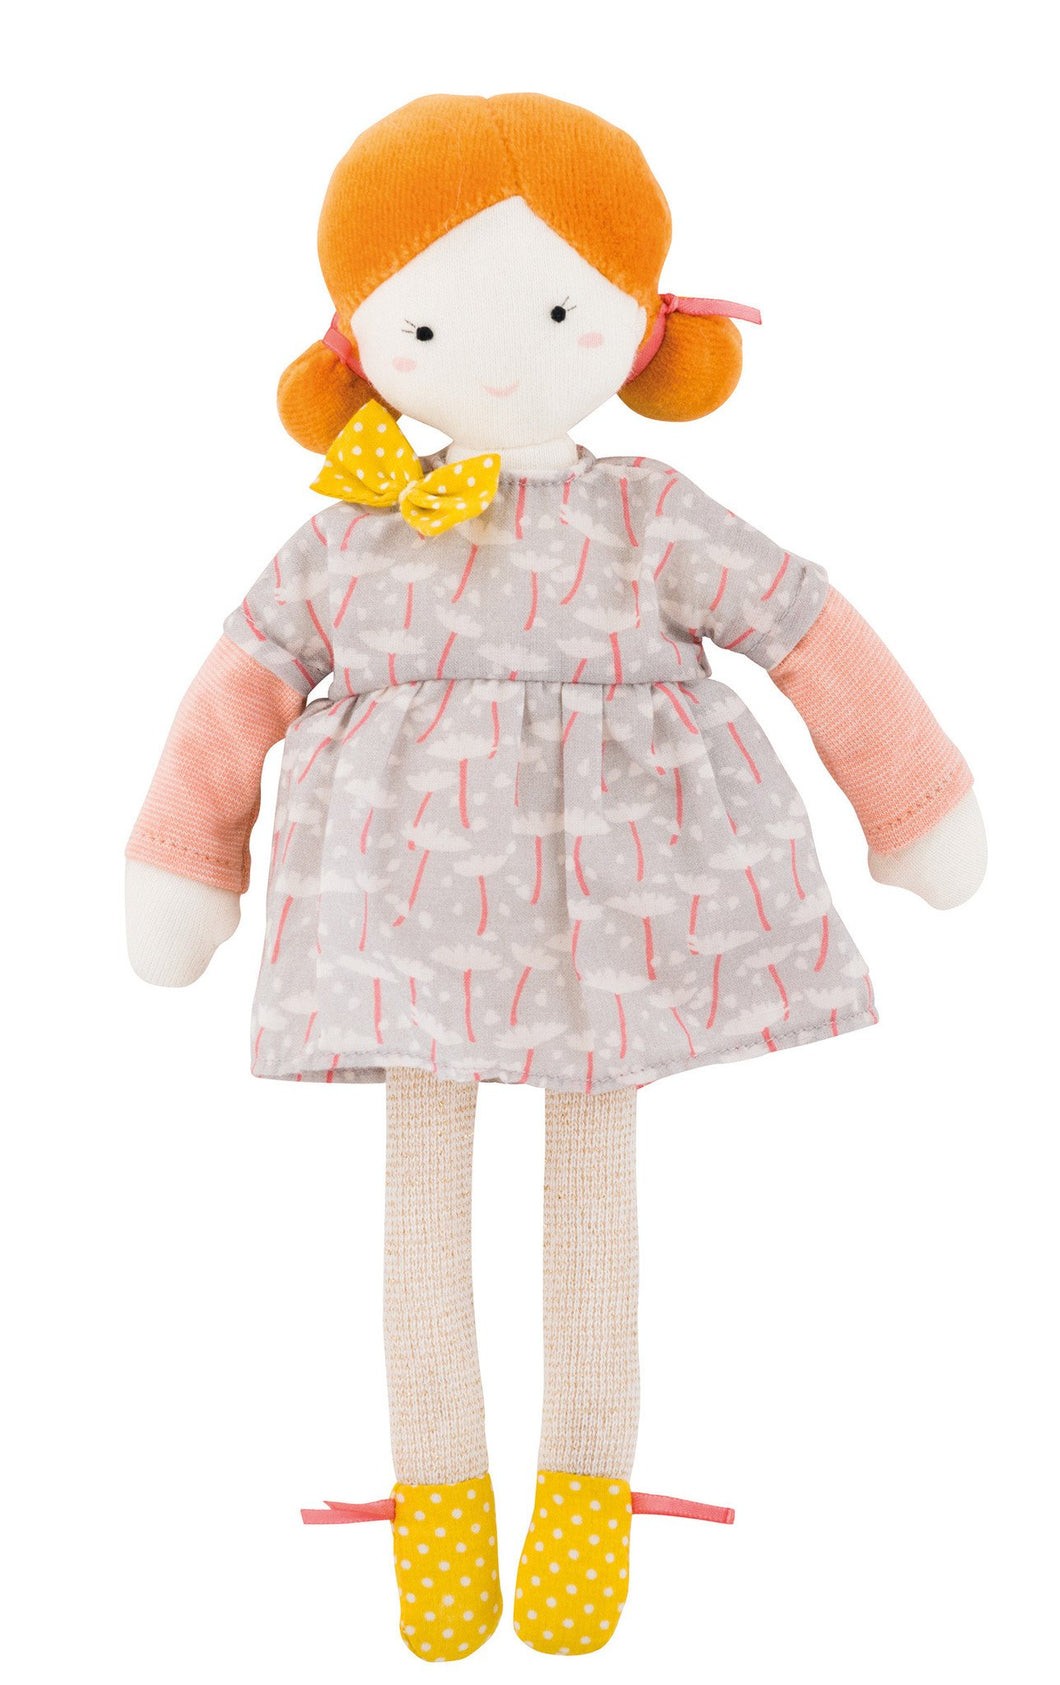 Moulin Roty Mademoiselle Blanche Plush